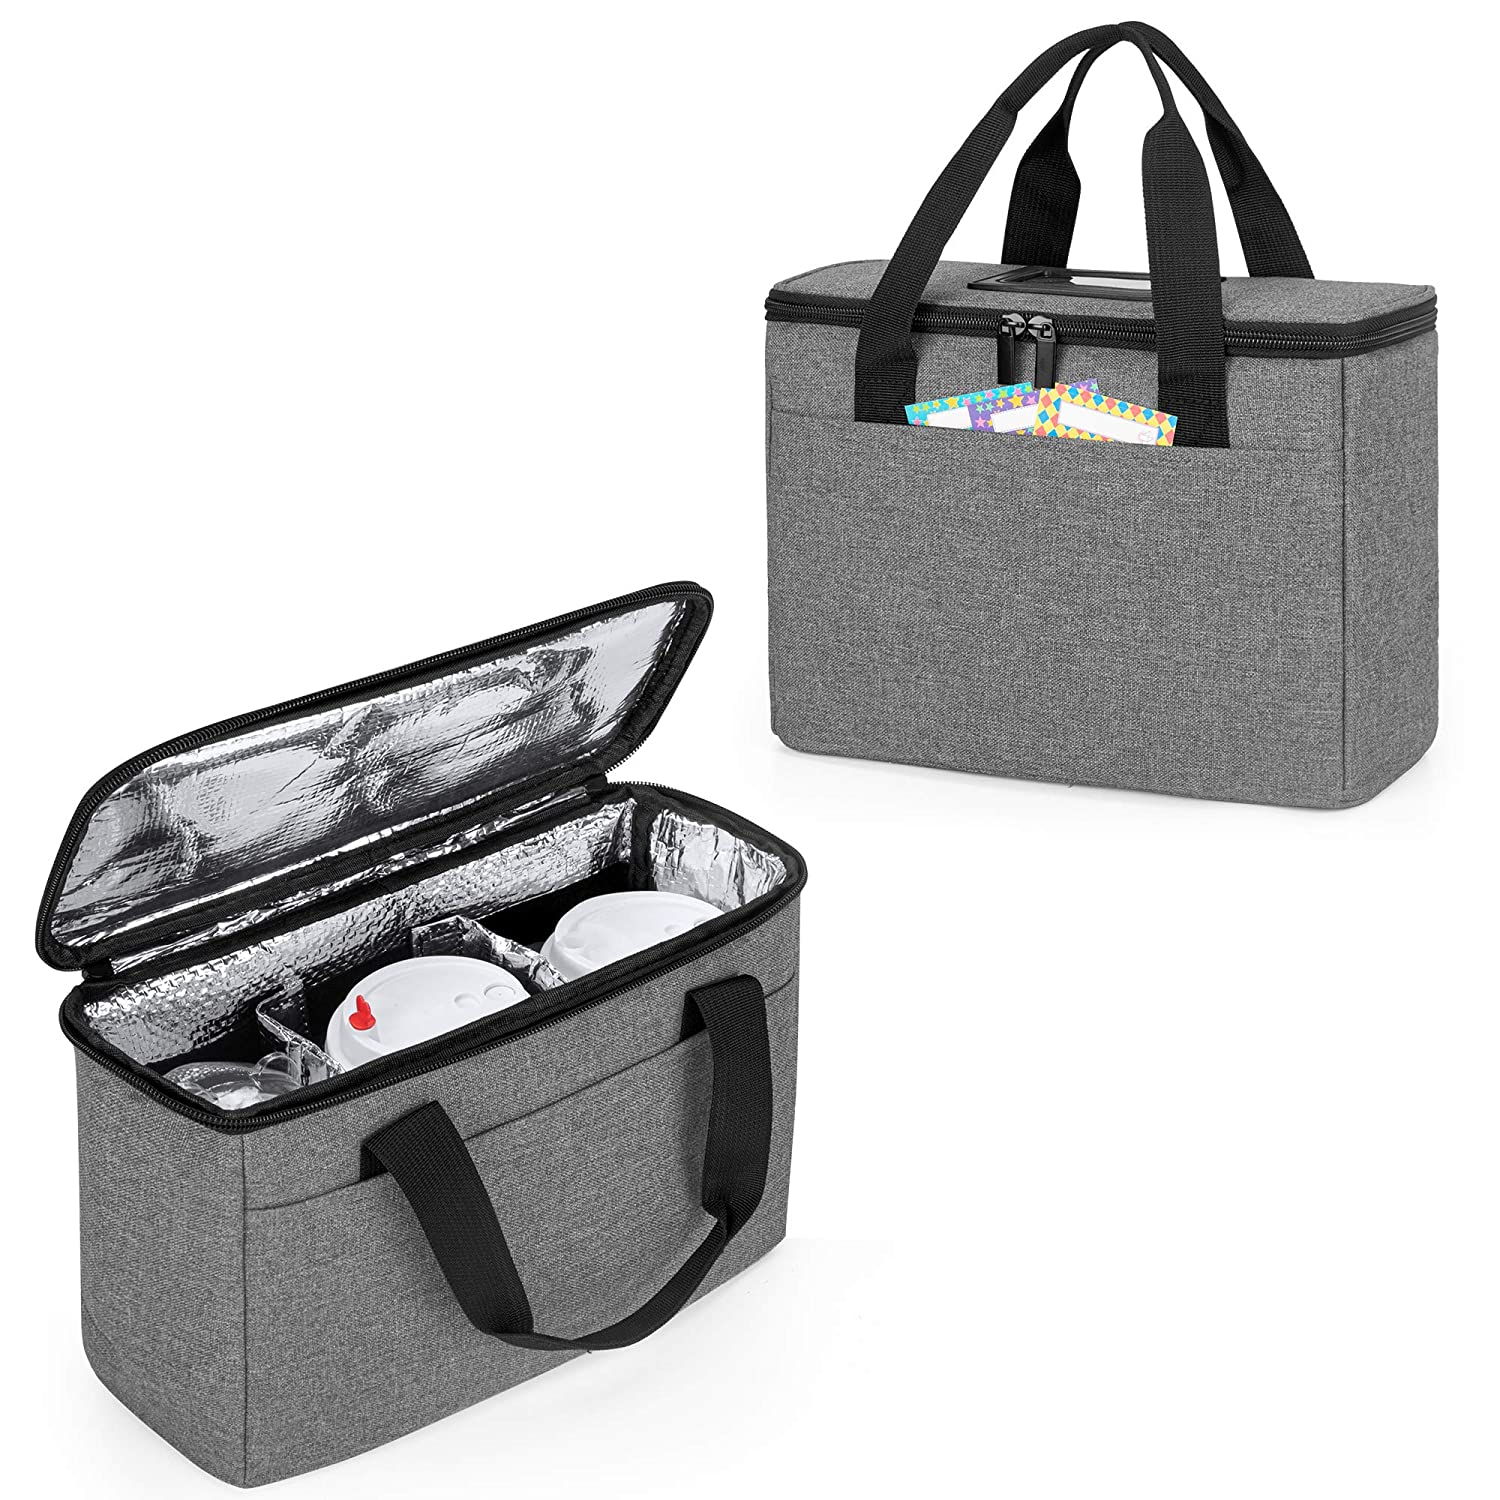 Beverages Carrier Tote with Handle for Outdoors Trunab Reusable 3 Cups Drink Carrier for Delivery with Adjustable Dividers Insulated Drink Caddy Holder Bag for Take Out Black